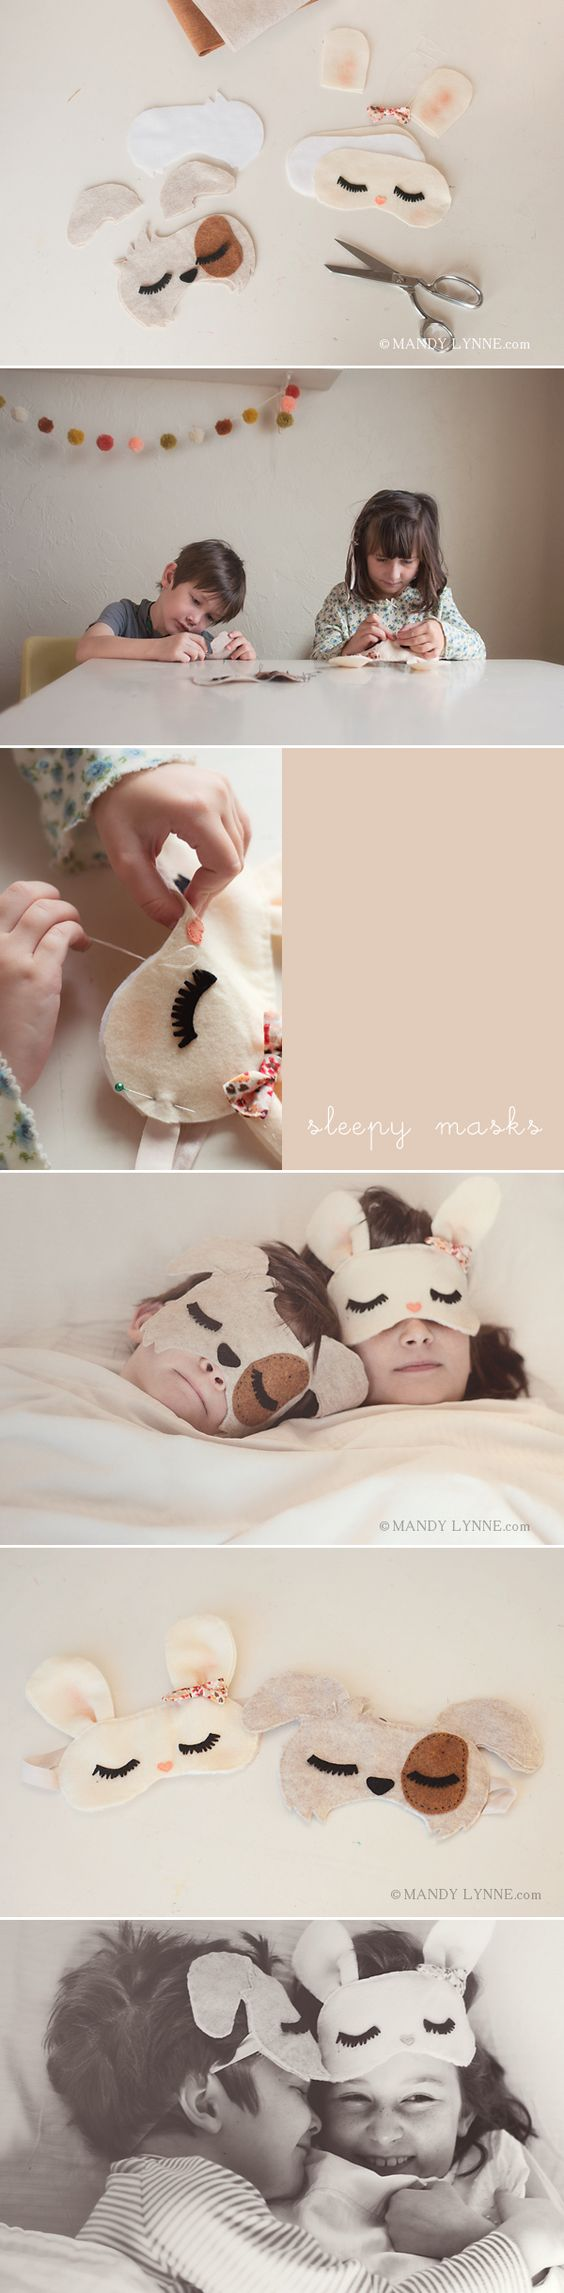 little animal sleeping masks for the kiddies!